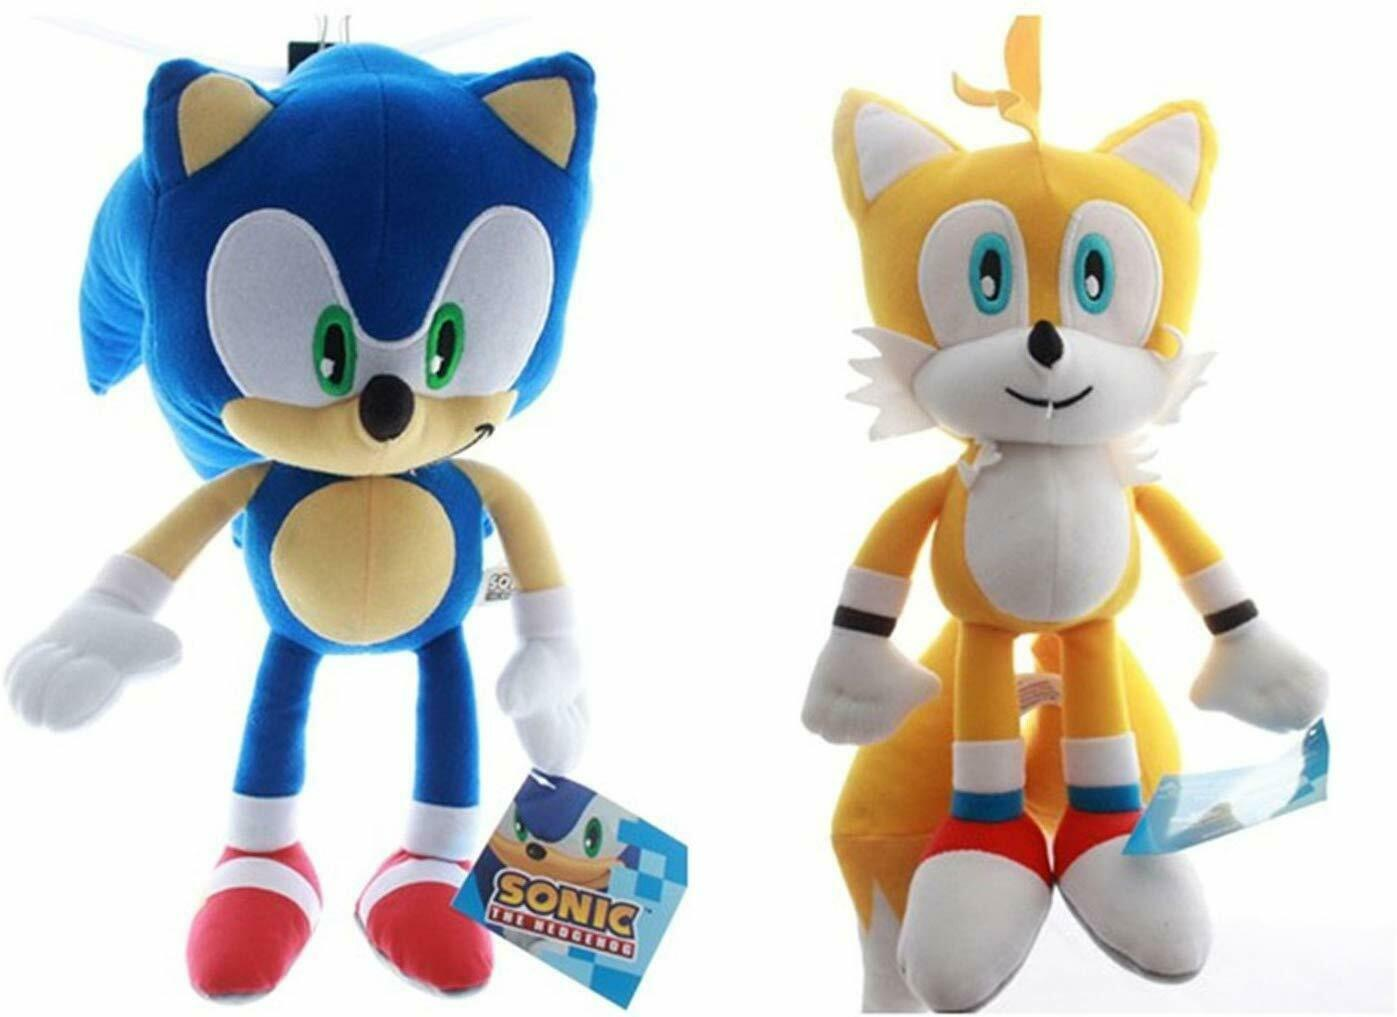 New Set Of 2 Sonic The Hedgehog Stuffed Plush Character Toys